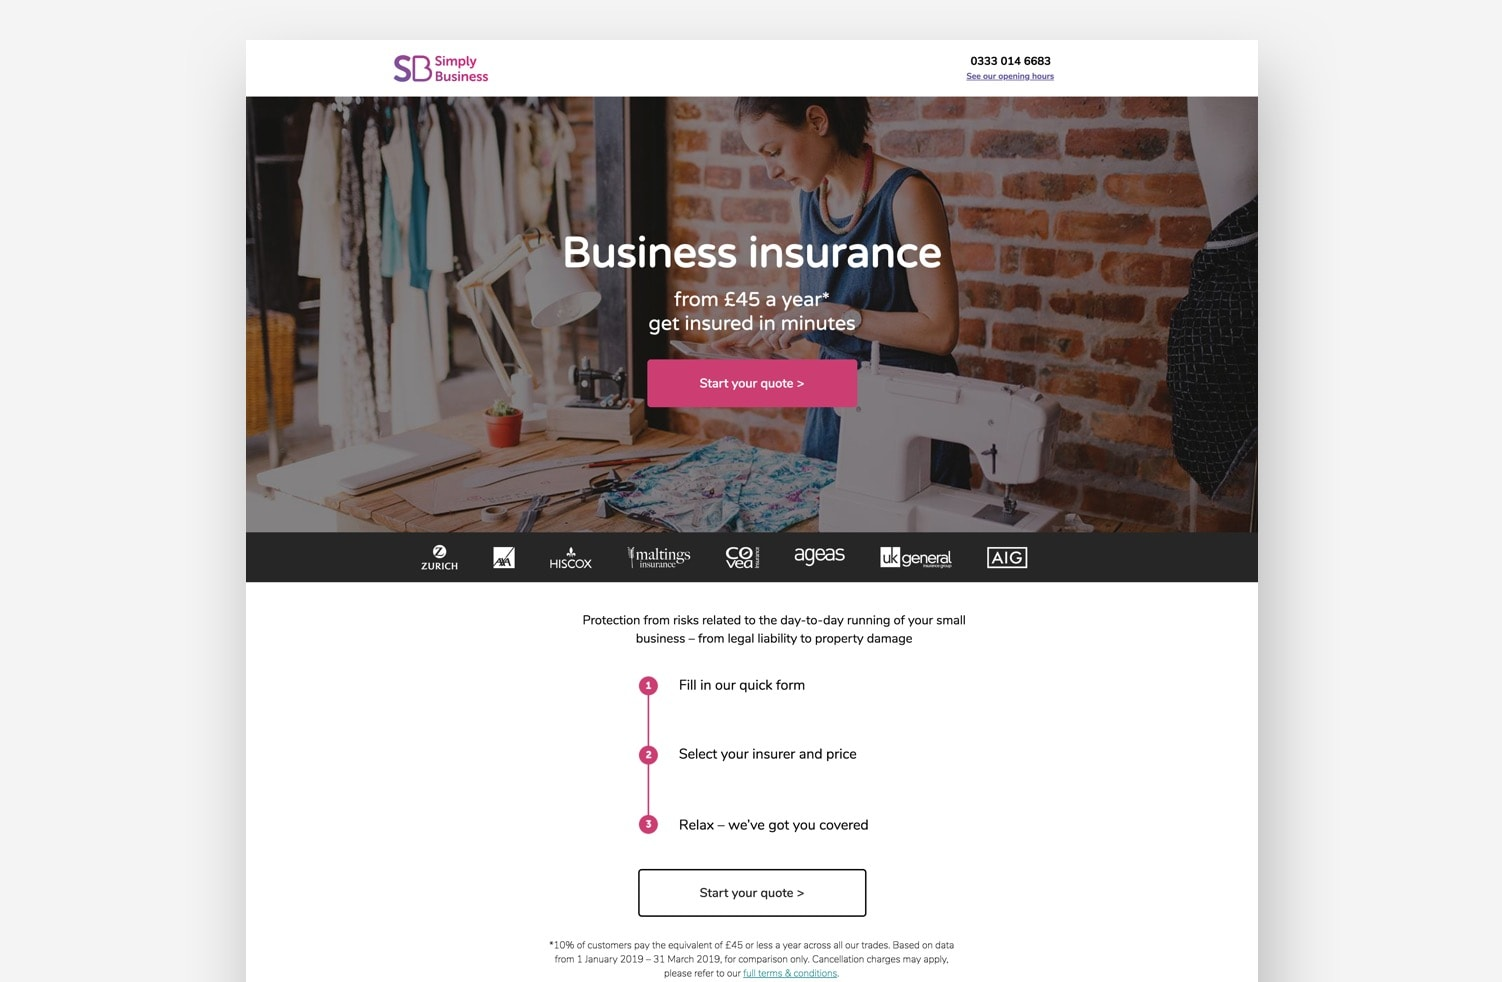 High-Converting Landing Page: Simply Business